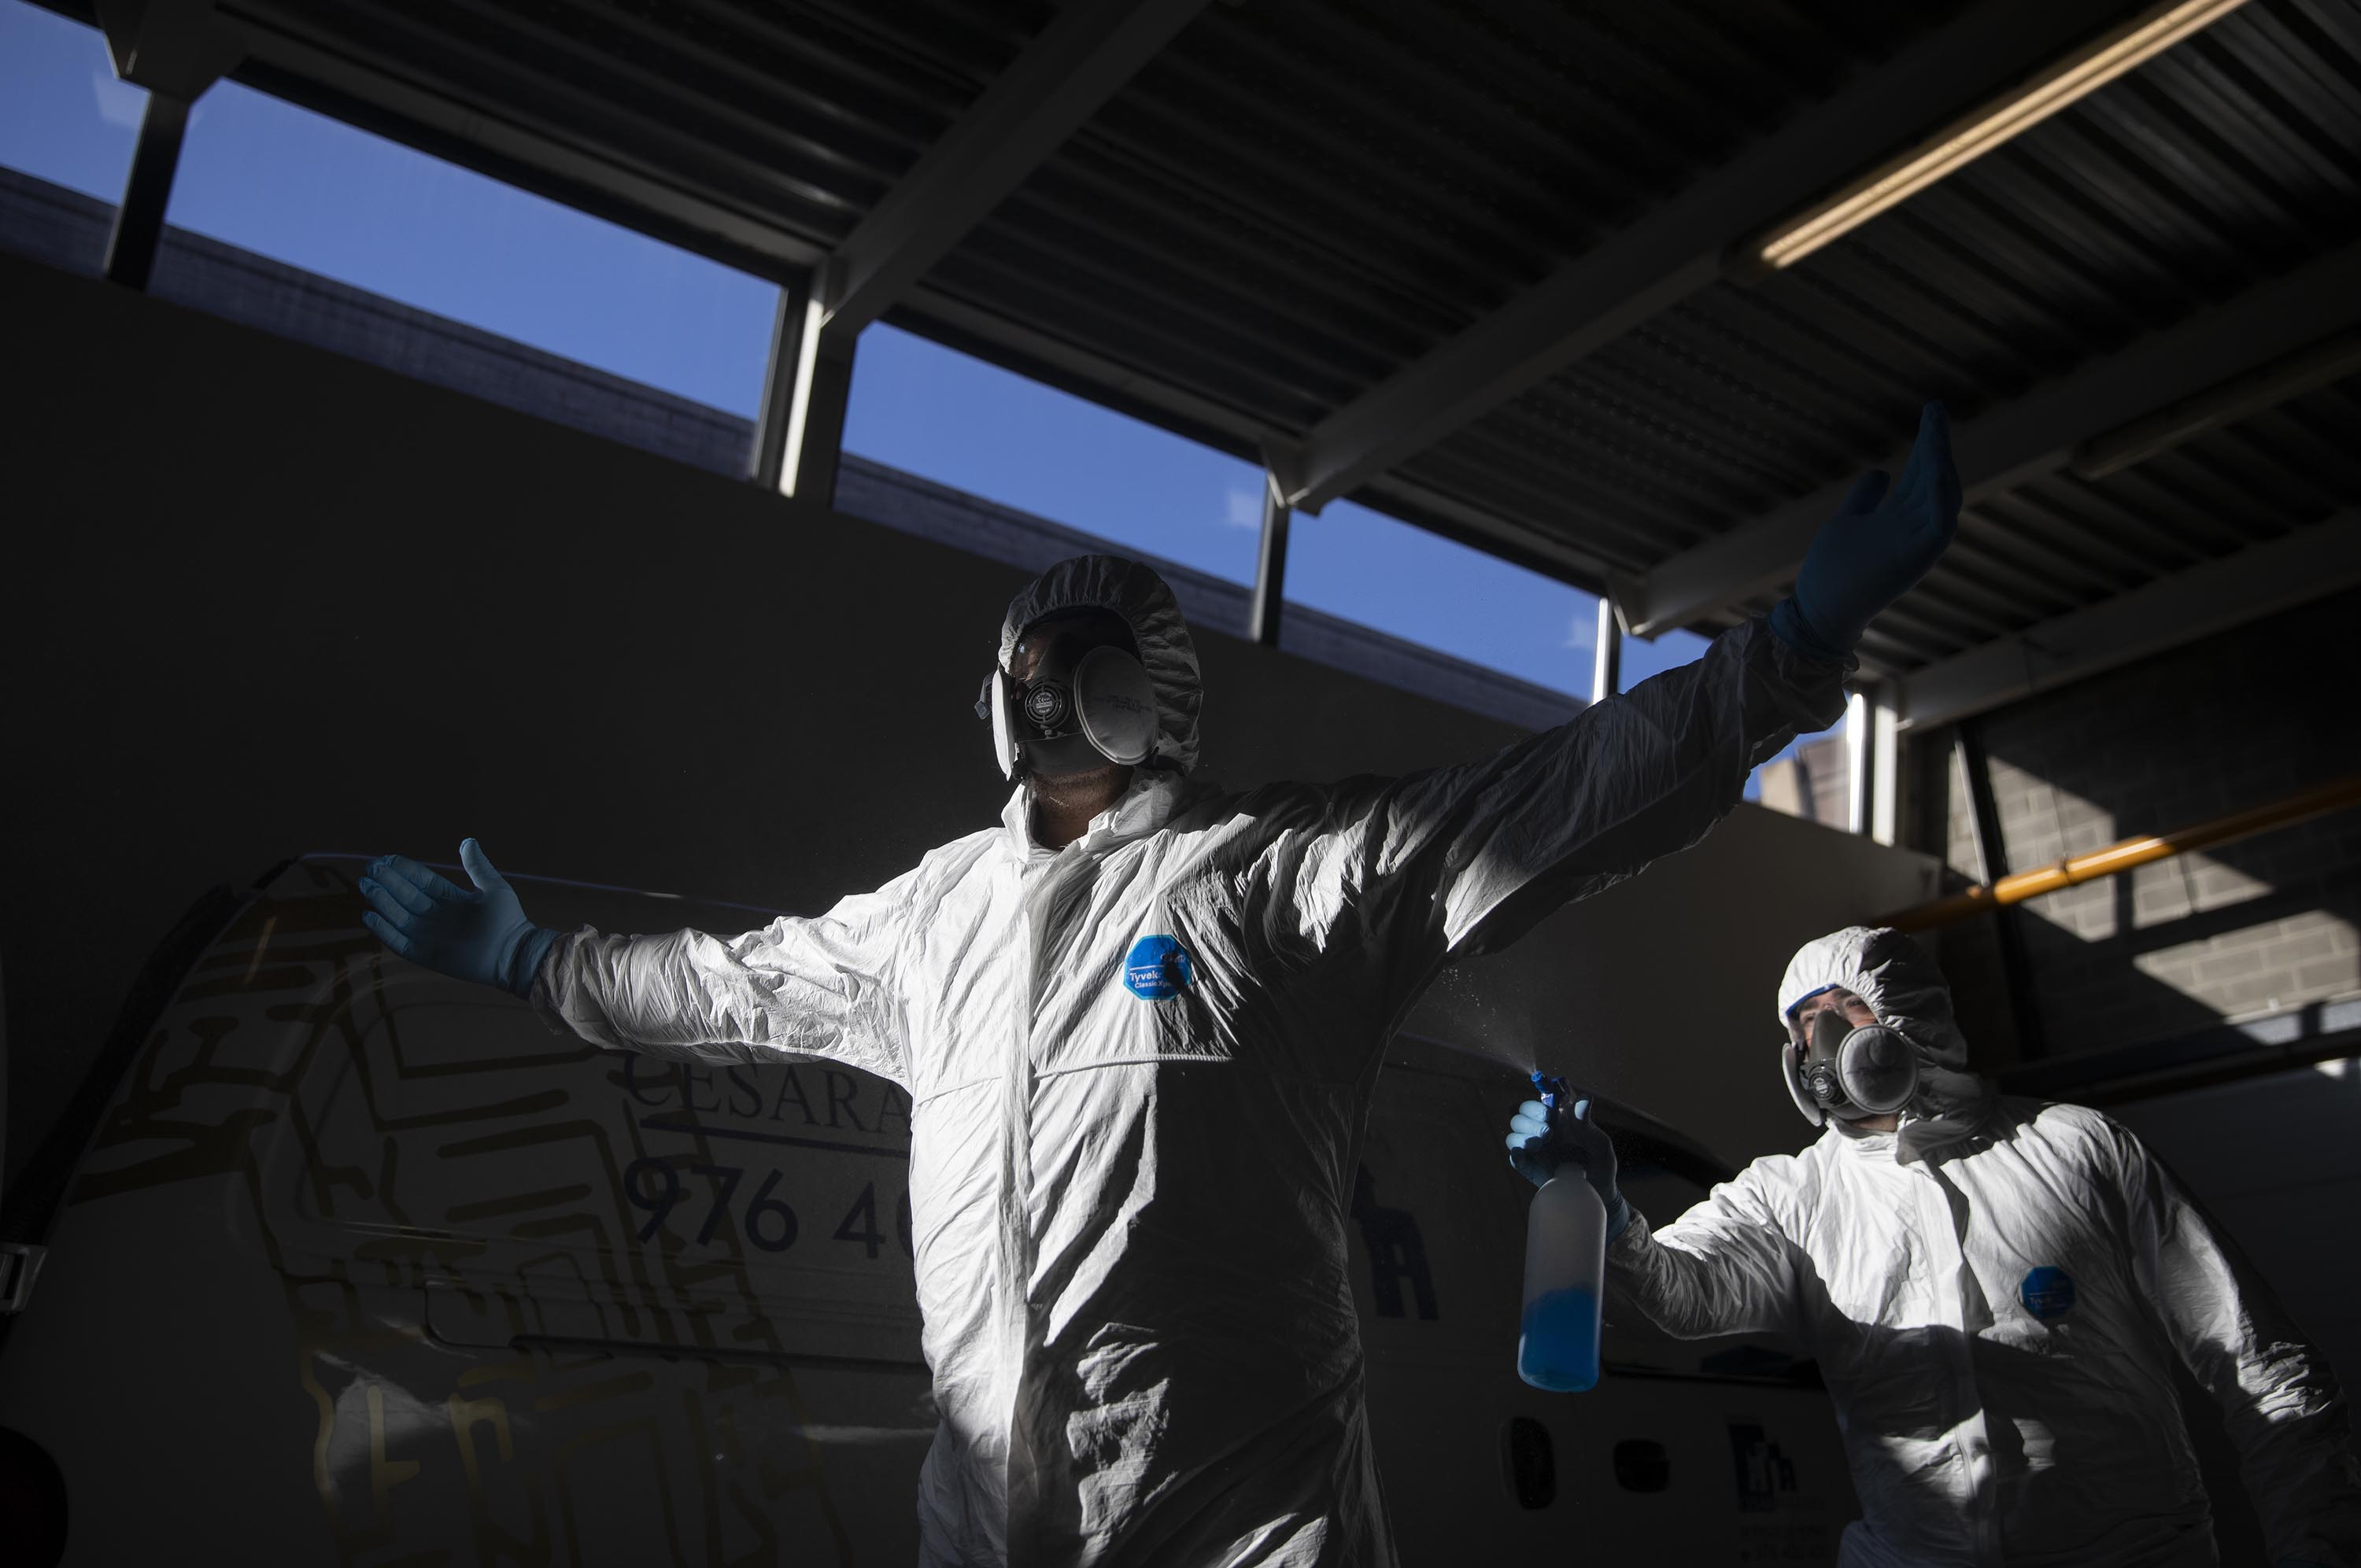 Cemetery workers disinfect each other after moving the body of a coronavirus victim at the Torrero de Zaragoza crematorium on April 13, in Zaragoza, Spain.